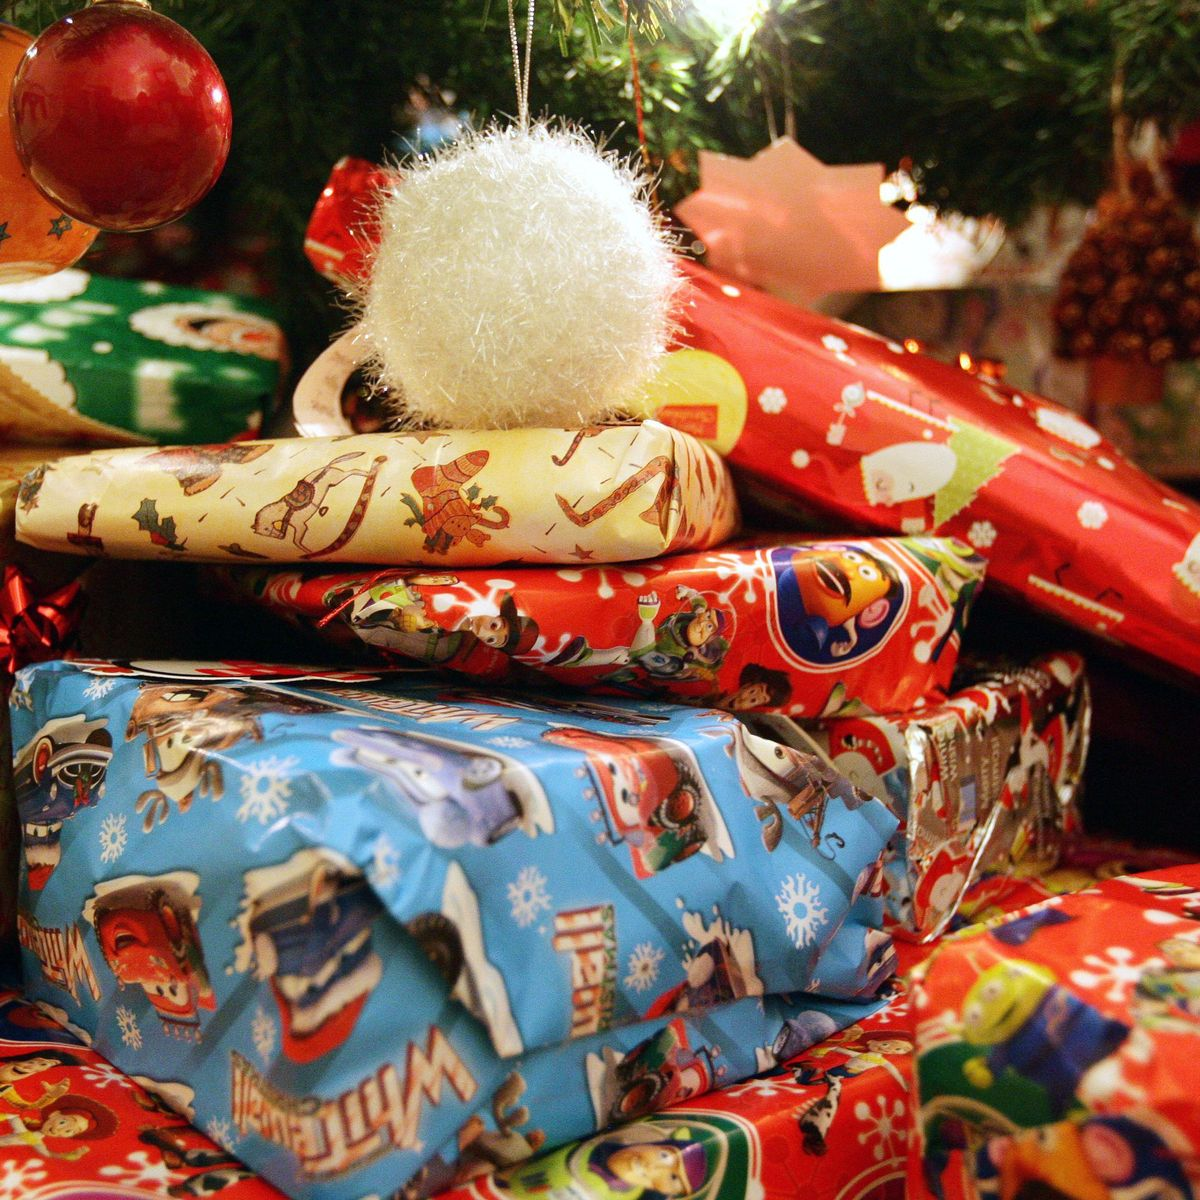 People Who Are Bad At Wrapping Christmas Presents Bring More Joy To Friends And Family Wales Online